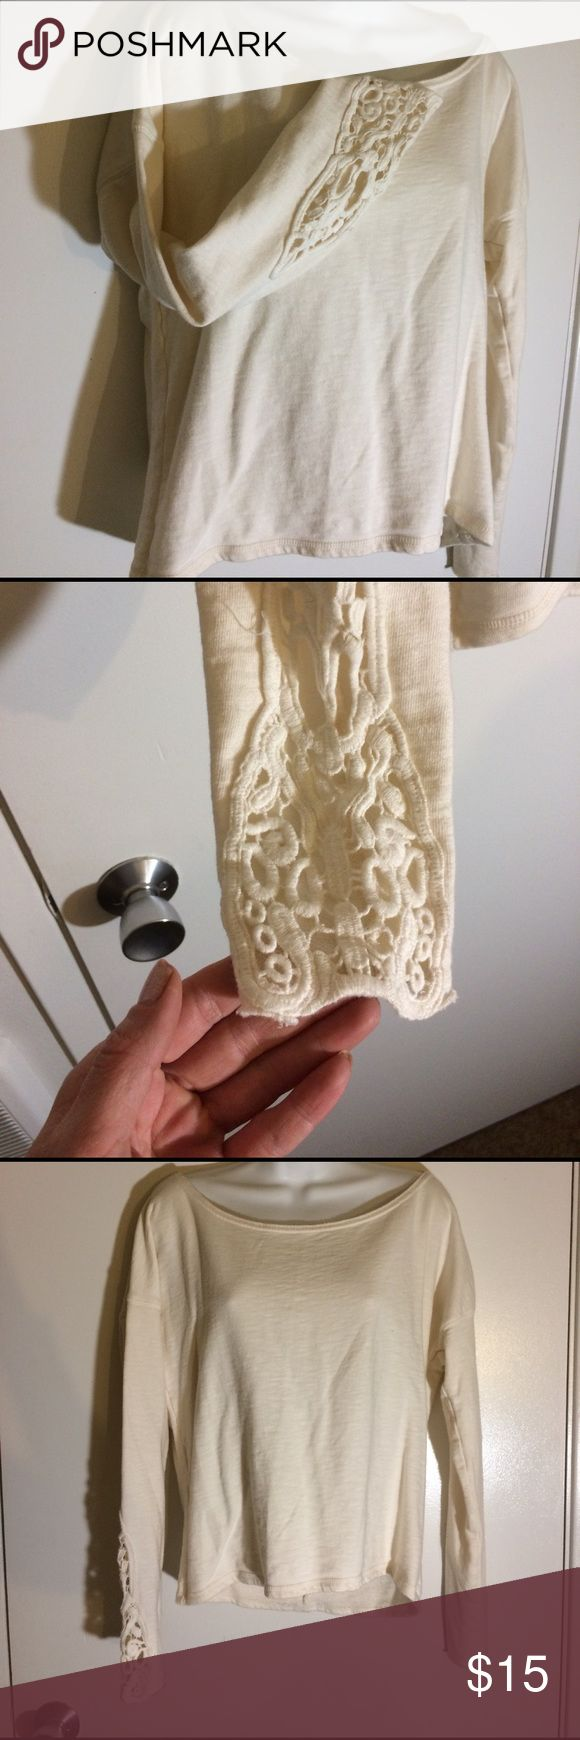 Aeropostale Sweatshirt Size medium. Cream color. Sweatshirt crewneck style. Lace detail crochet sleeves. Zip up back . By Aeropostale brand . No flaws . Wrapped and shipped with care. Aeropostale Tops Sweatshirts & Hoodies